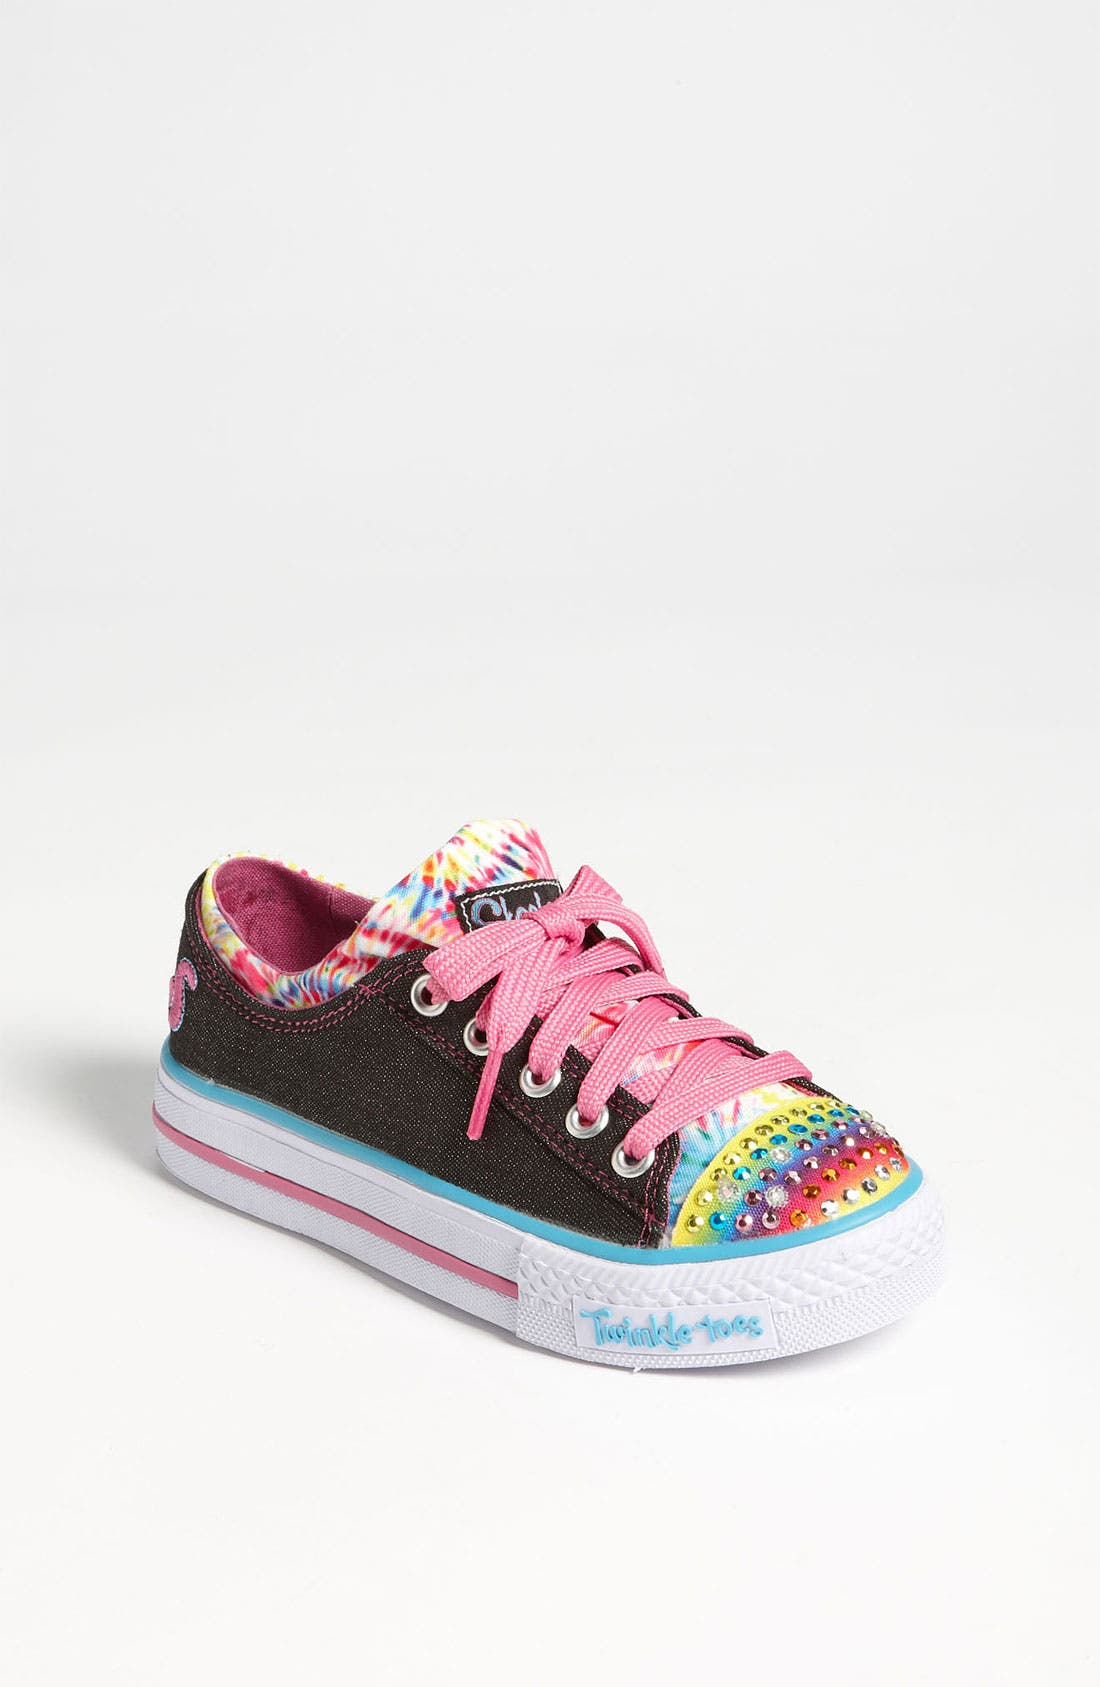 Alternate Image 1 Selected - SKECHERS 'Shuffle Ups - Much Love' Sneaker (Toddler & Little Kid)